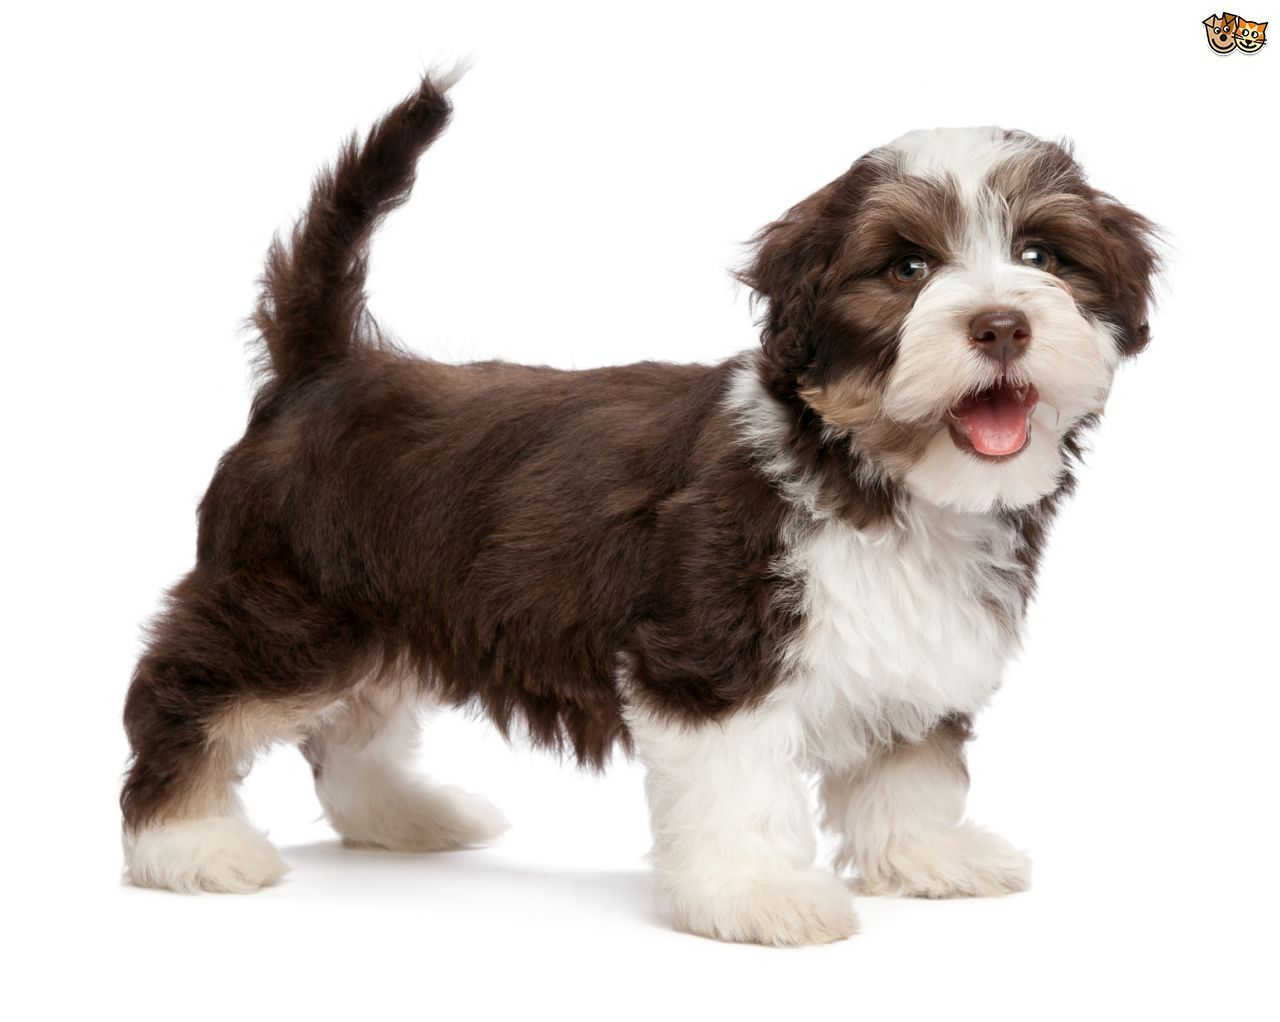 The Havanese dog is Cuba's national dog, originating from ...